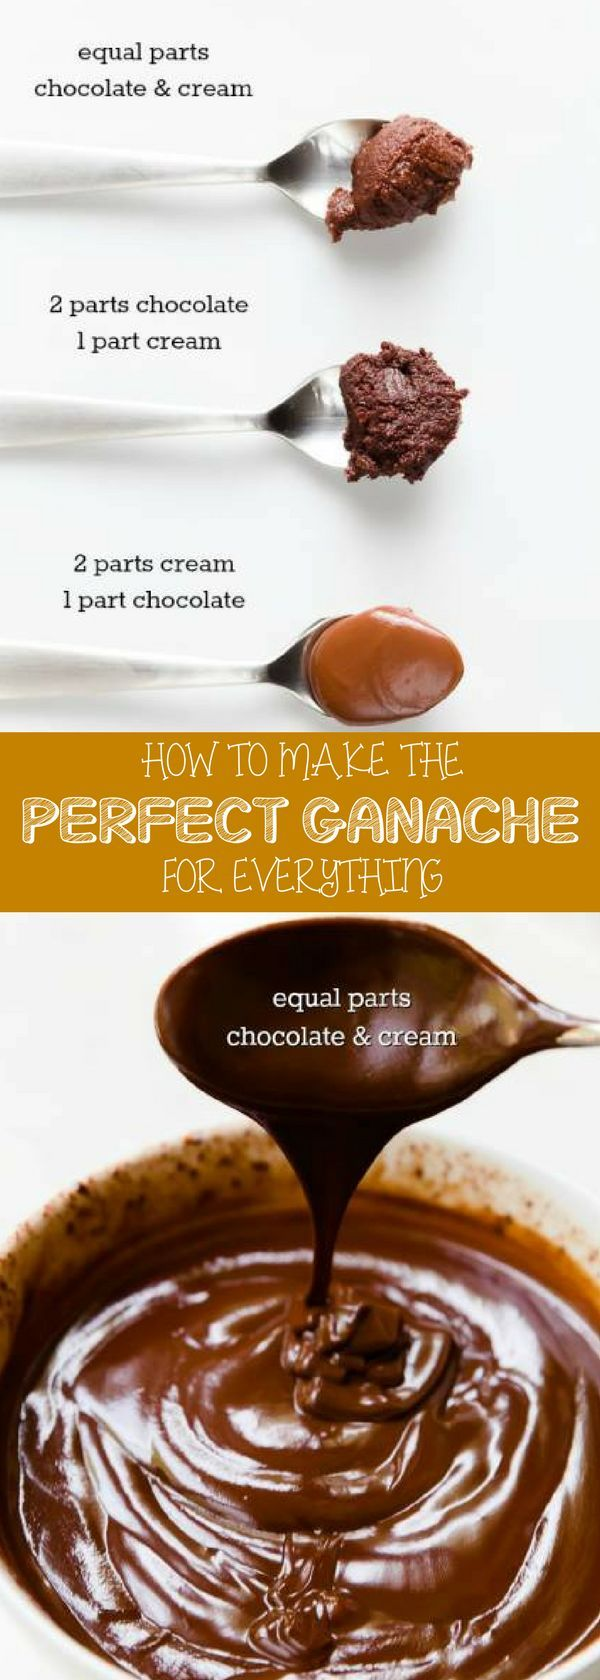 Easy chocolate ganache recipe easy that is perfect for everything! By combining chocolate and heavy whipping cream, you can create cake filling, poured glaze, a spread or piped frosting, a decorative drizzle, or the base for truffles.